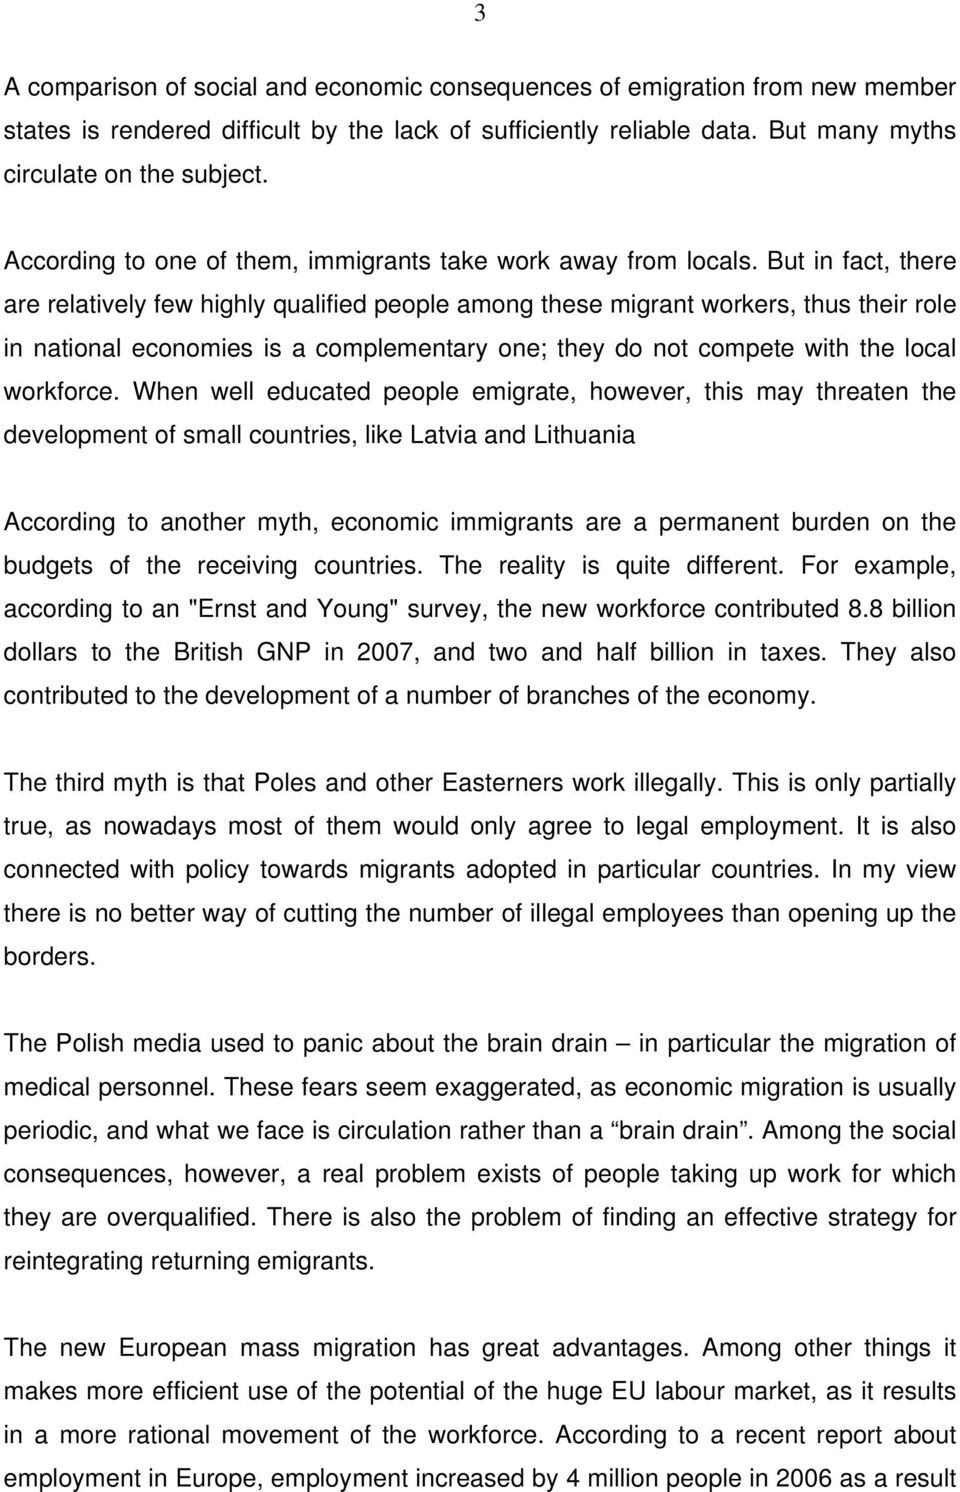 But in fact, there are relatively few highly qualified people among these migrant workers, thus their role in national economies is a complementary one; they do not compete with the local workforce.